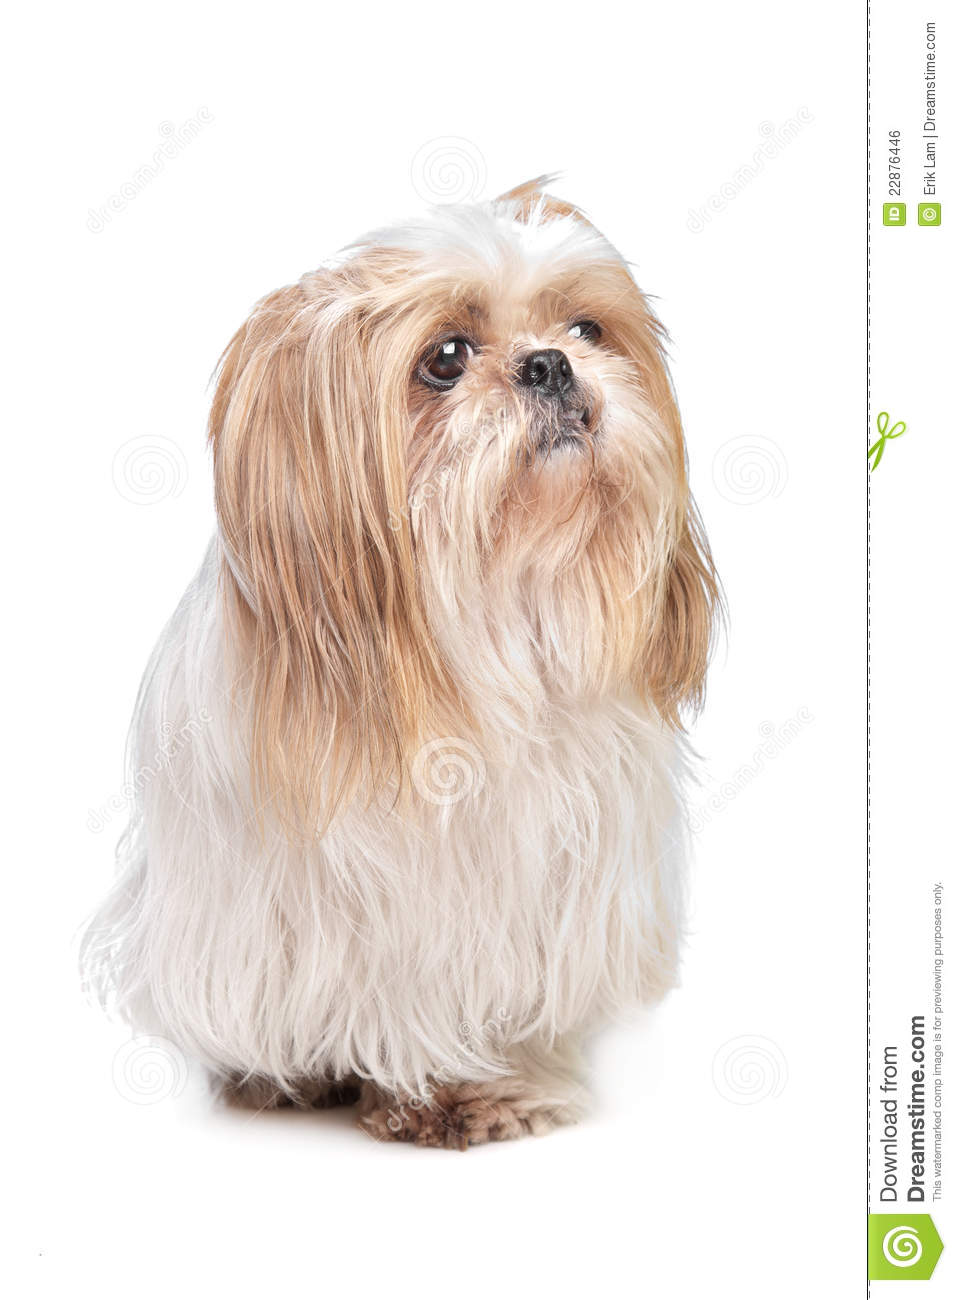 Long Haired Small Dog Royalty Free Stock Image - Image: 22876446